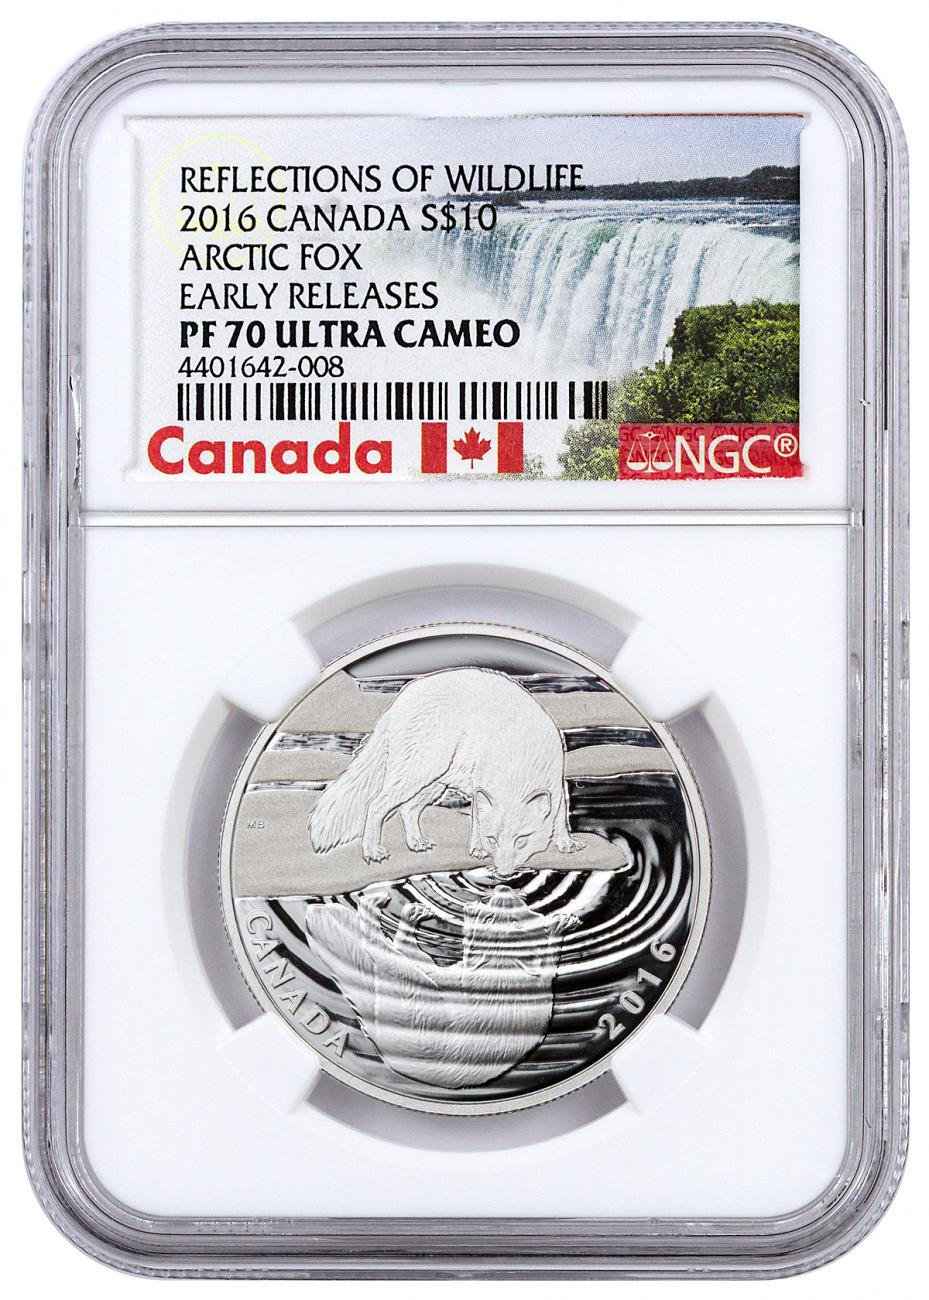 2016 Canada $10 1/2 oz. Proof Silver Reflections of Wildlife - Arctic Fox - NGC PF70 UC Early Releases (Exclusive Canada Label)